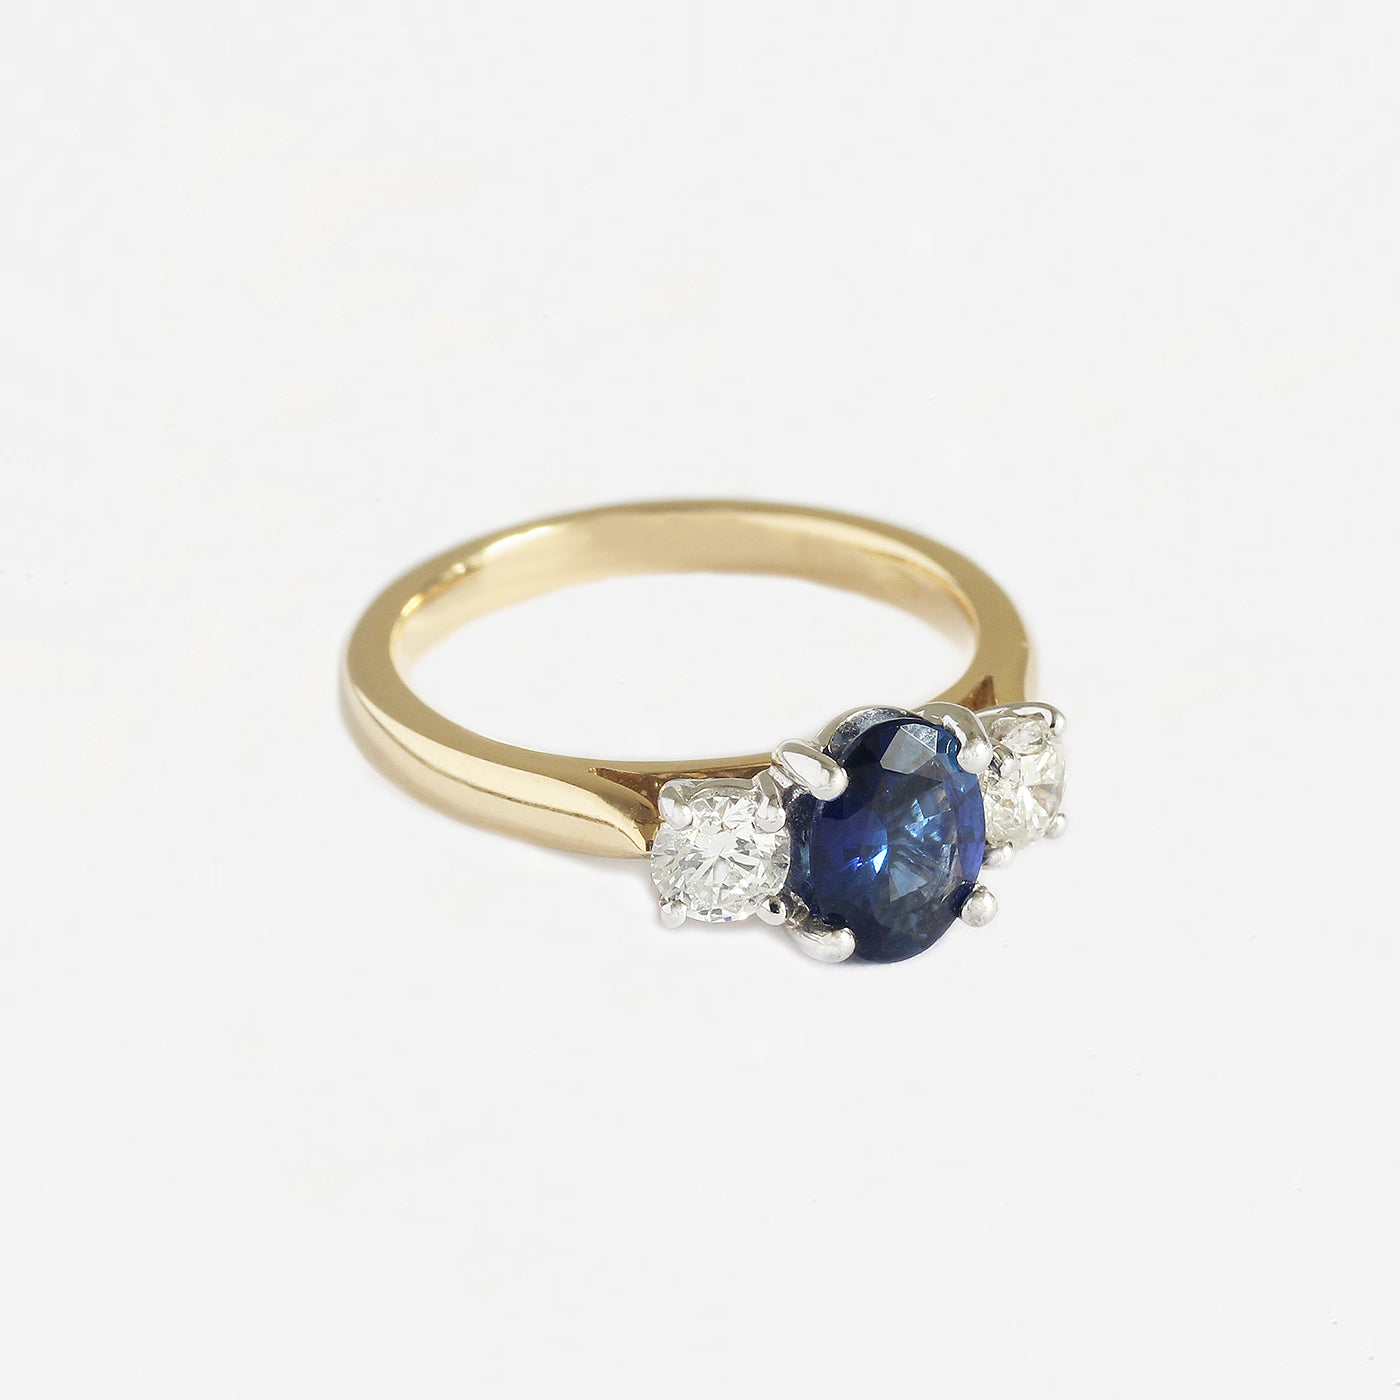 a sapphire and diamond 3 stone claw set ring in 18 carat gold